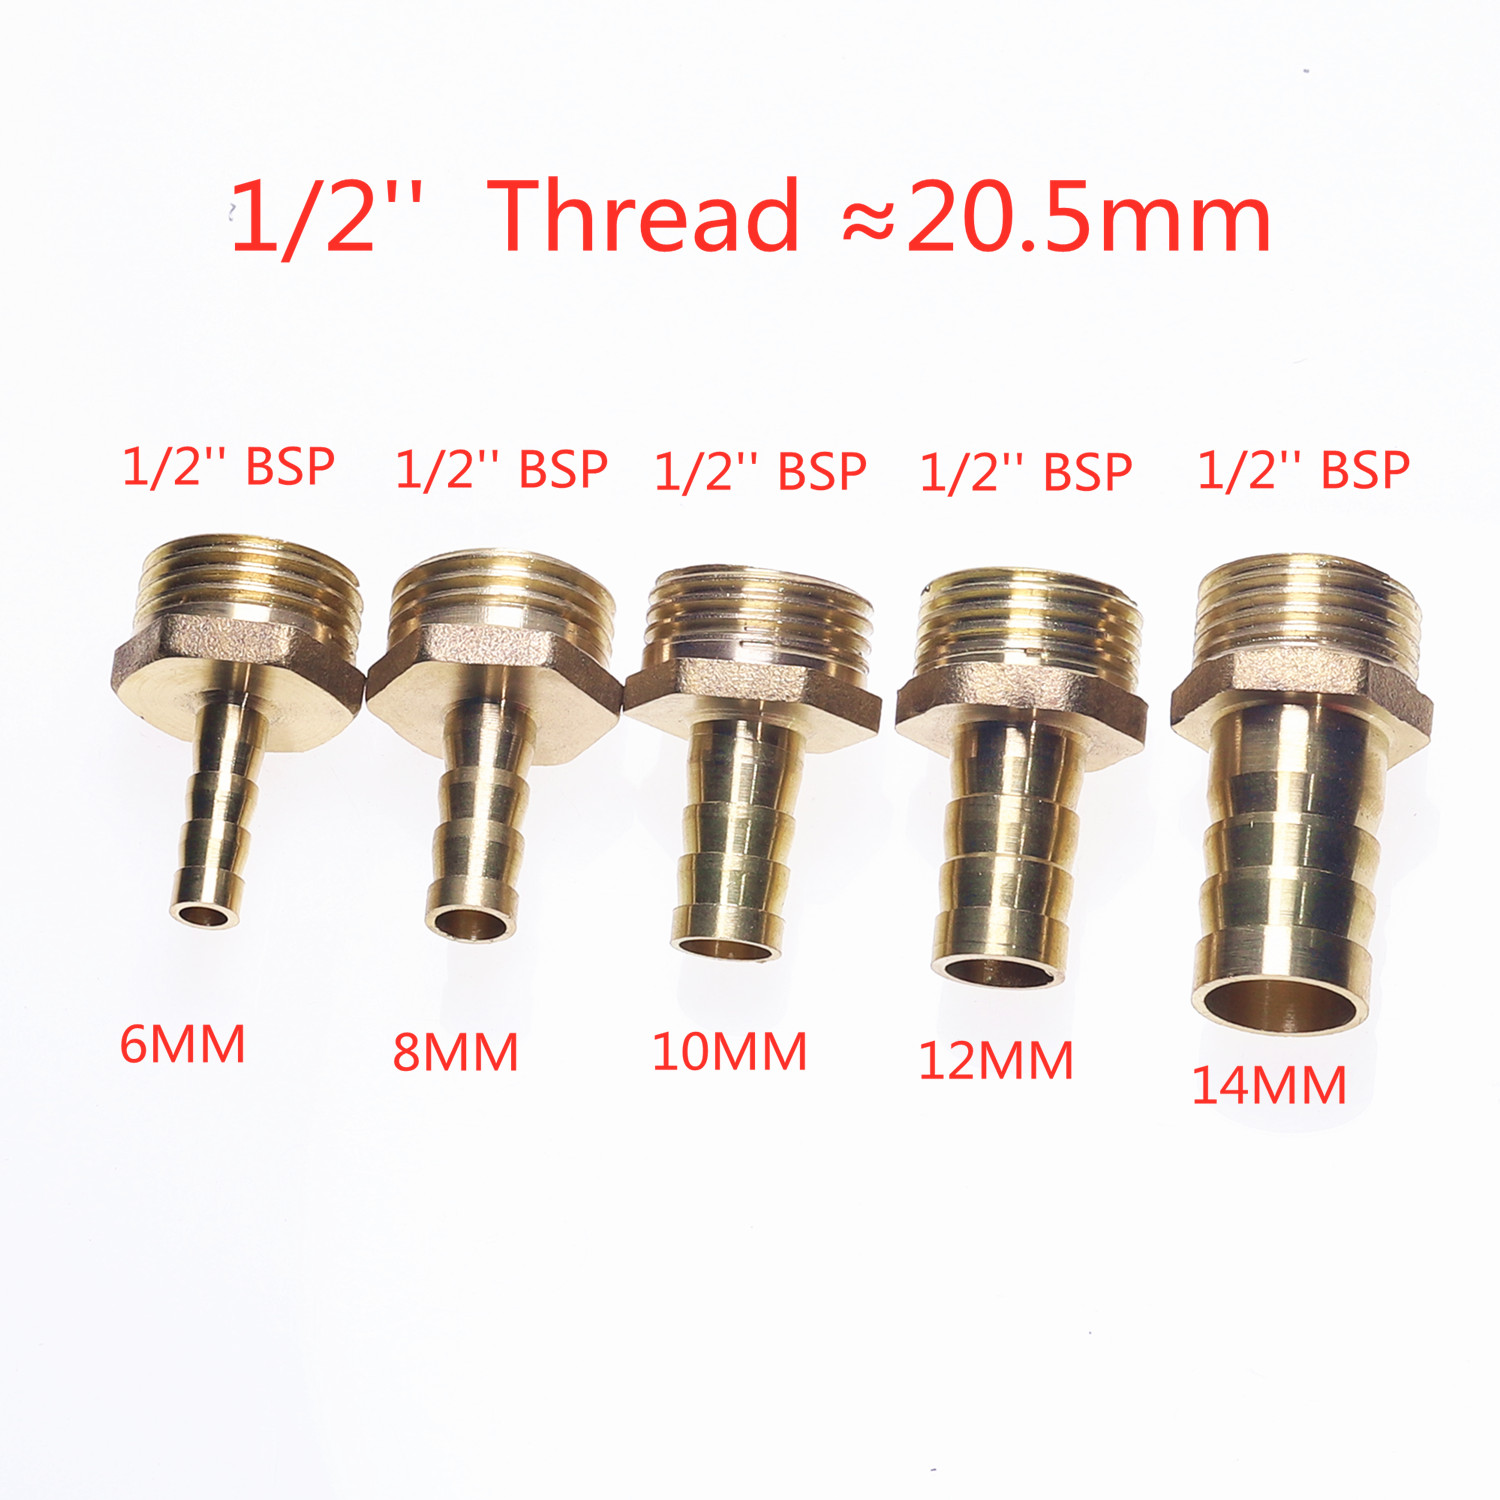 4mm 12mm Brass Pipe Fitting Hose Barb Tail 1 8 quot 1 4 quot 1 2 quot BSP Male Connector Joint Copper Pipe Coupler Adapter Gas Joint in Pipe Fittings from Home Improvement